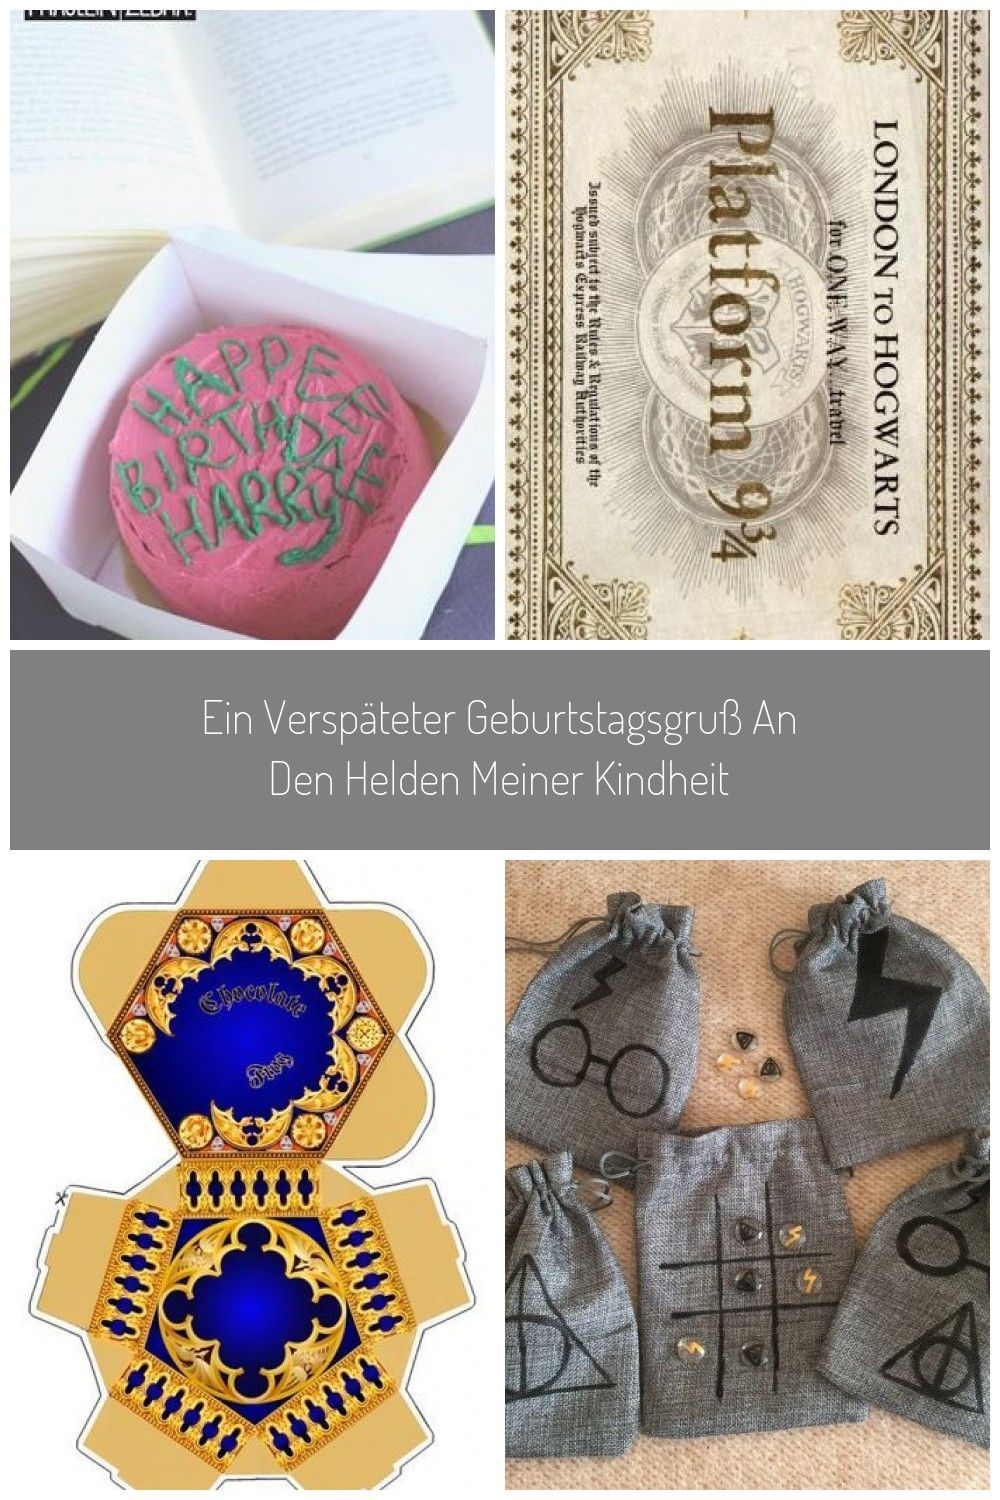 Harry Potters Birthday Cake Geschenkideen Harry Potter Ein